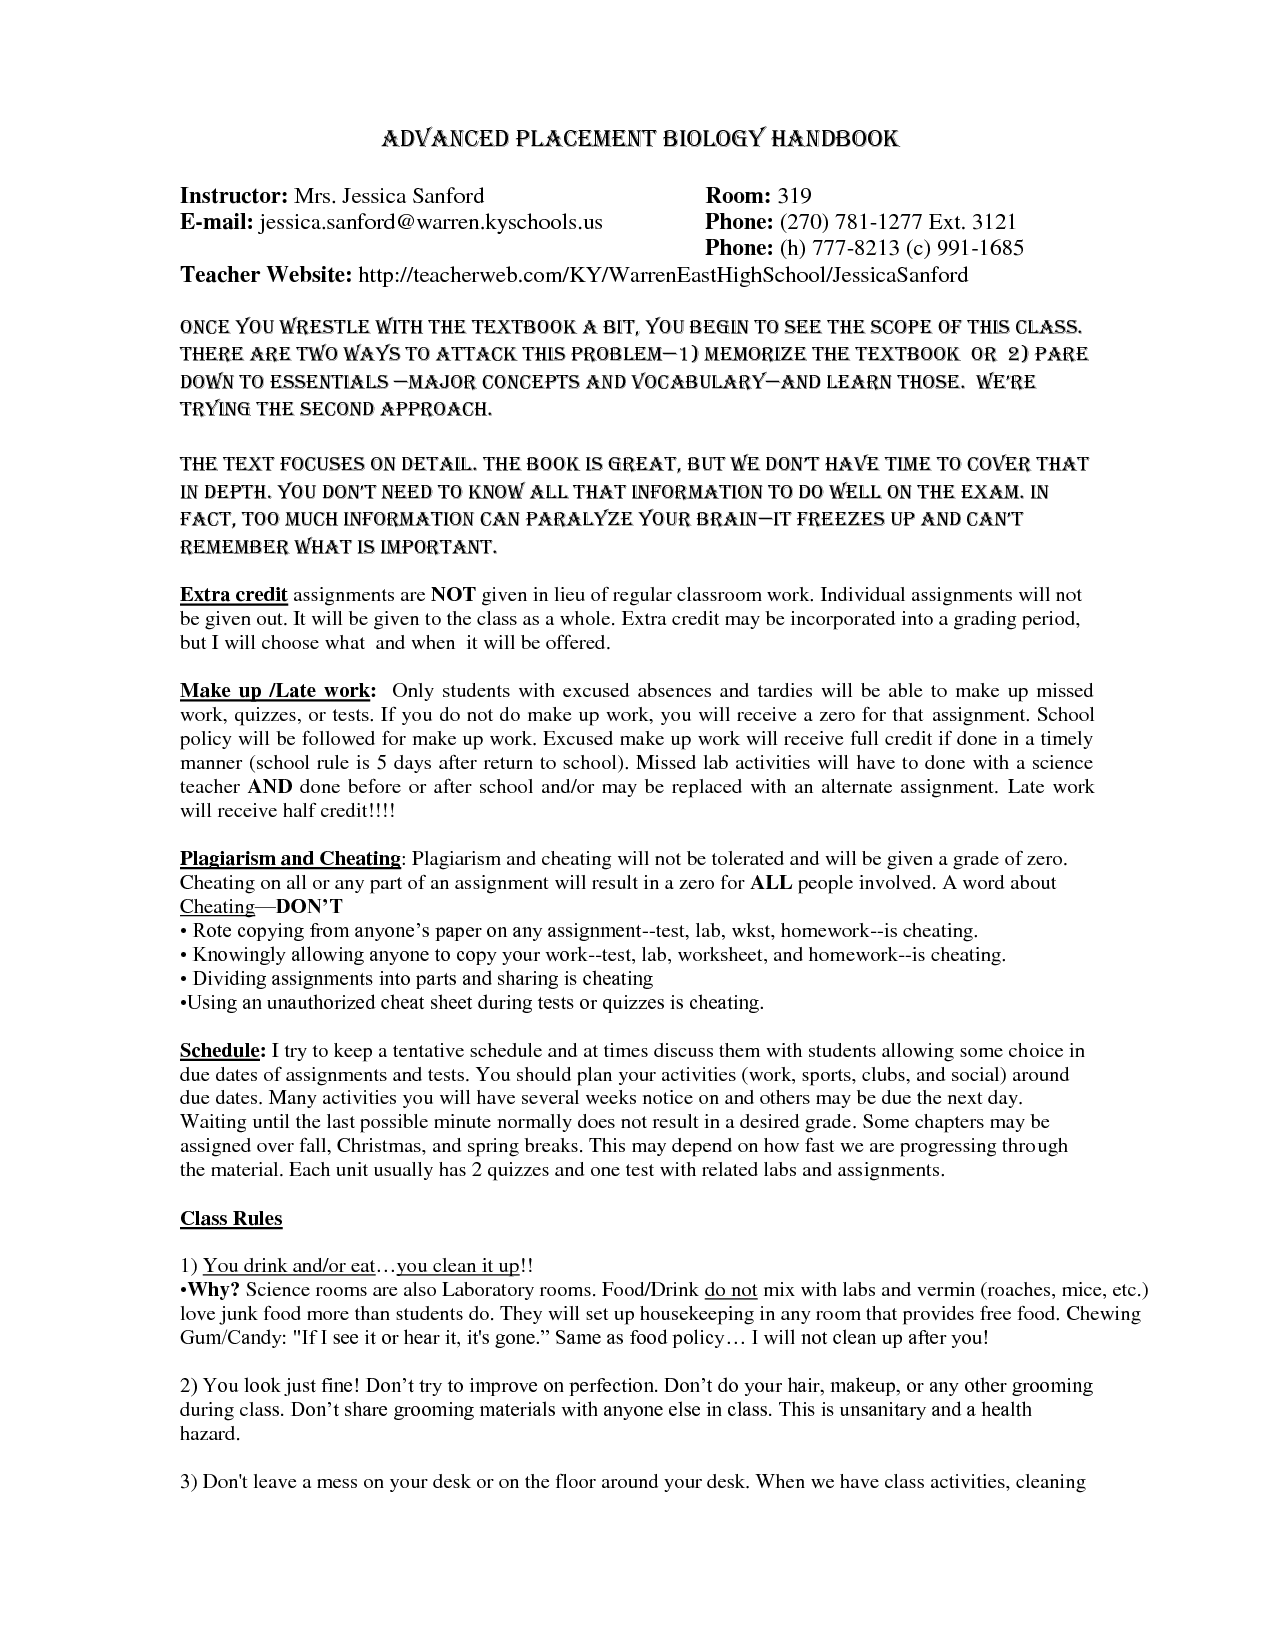 18 Best Images Of Dna And Genes Worksheet